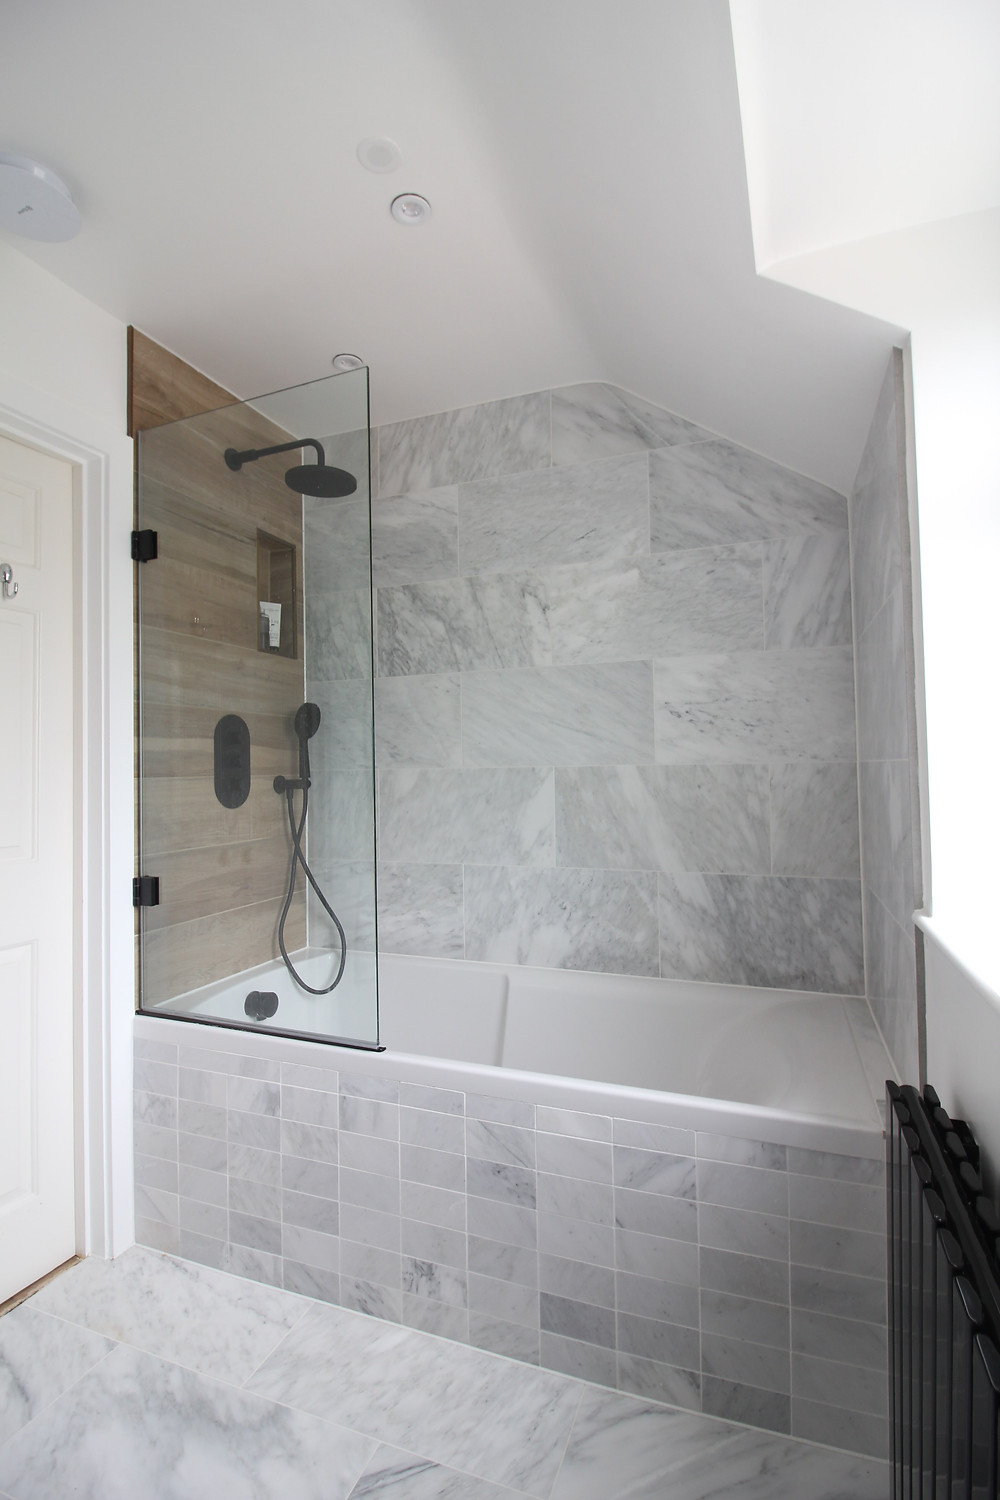 Alsace Honed Marble tiles Mandarin Stone, small bathroom design, renovation ideas, black taps and a black Milano slim Radiator, the Cadmium 18 bath screen The Shower Lab